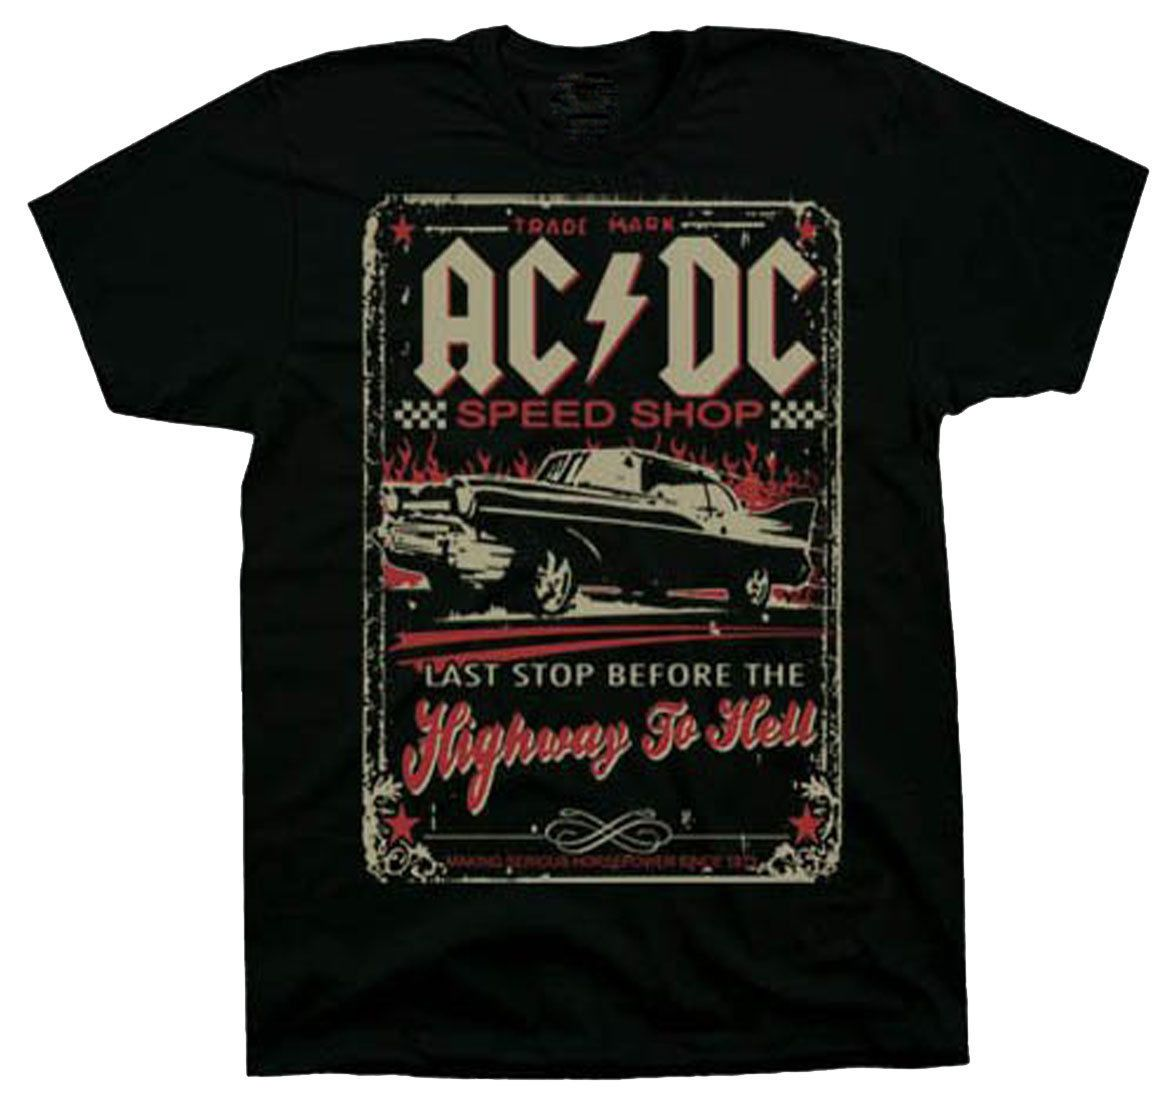 Official Ac Dc Speed Shop Adult T-Shirt - Ac Dc Acdc Rock And Roll ... 4a1d453296ba3